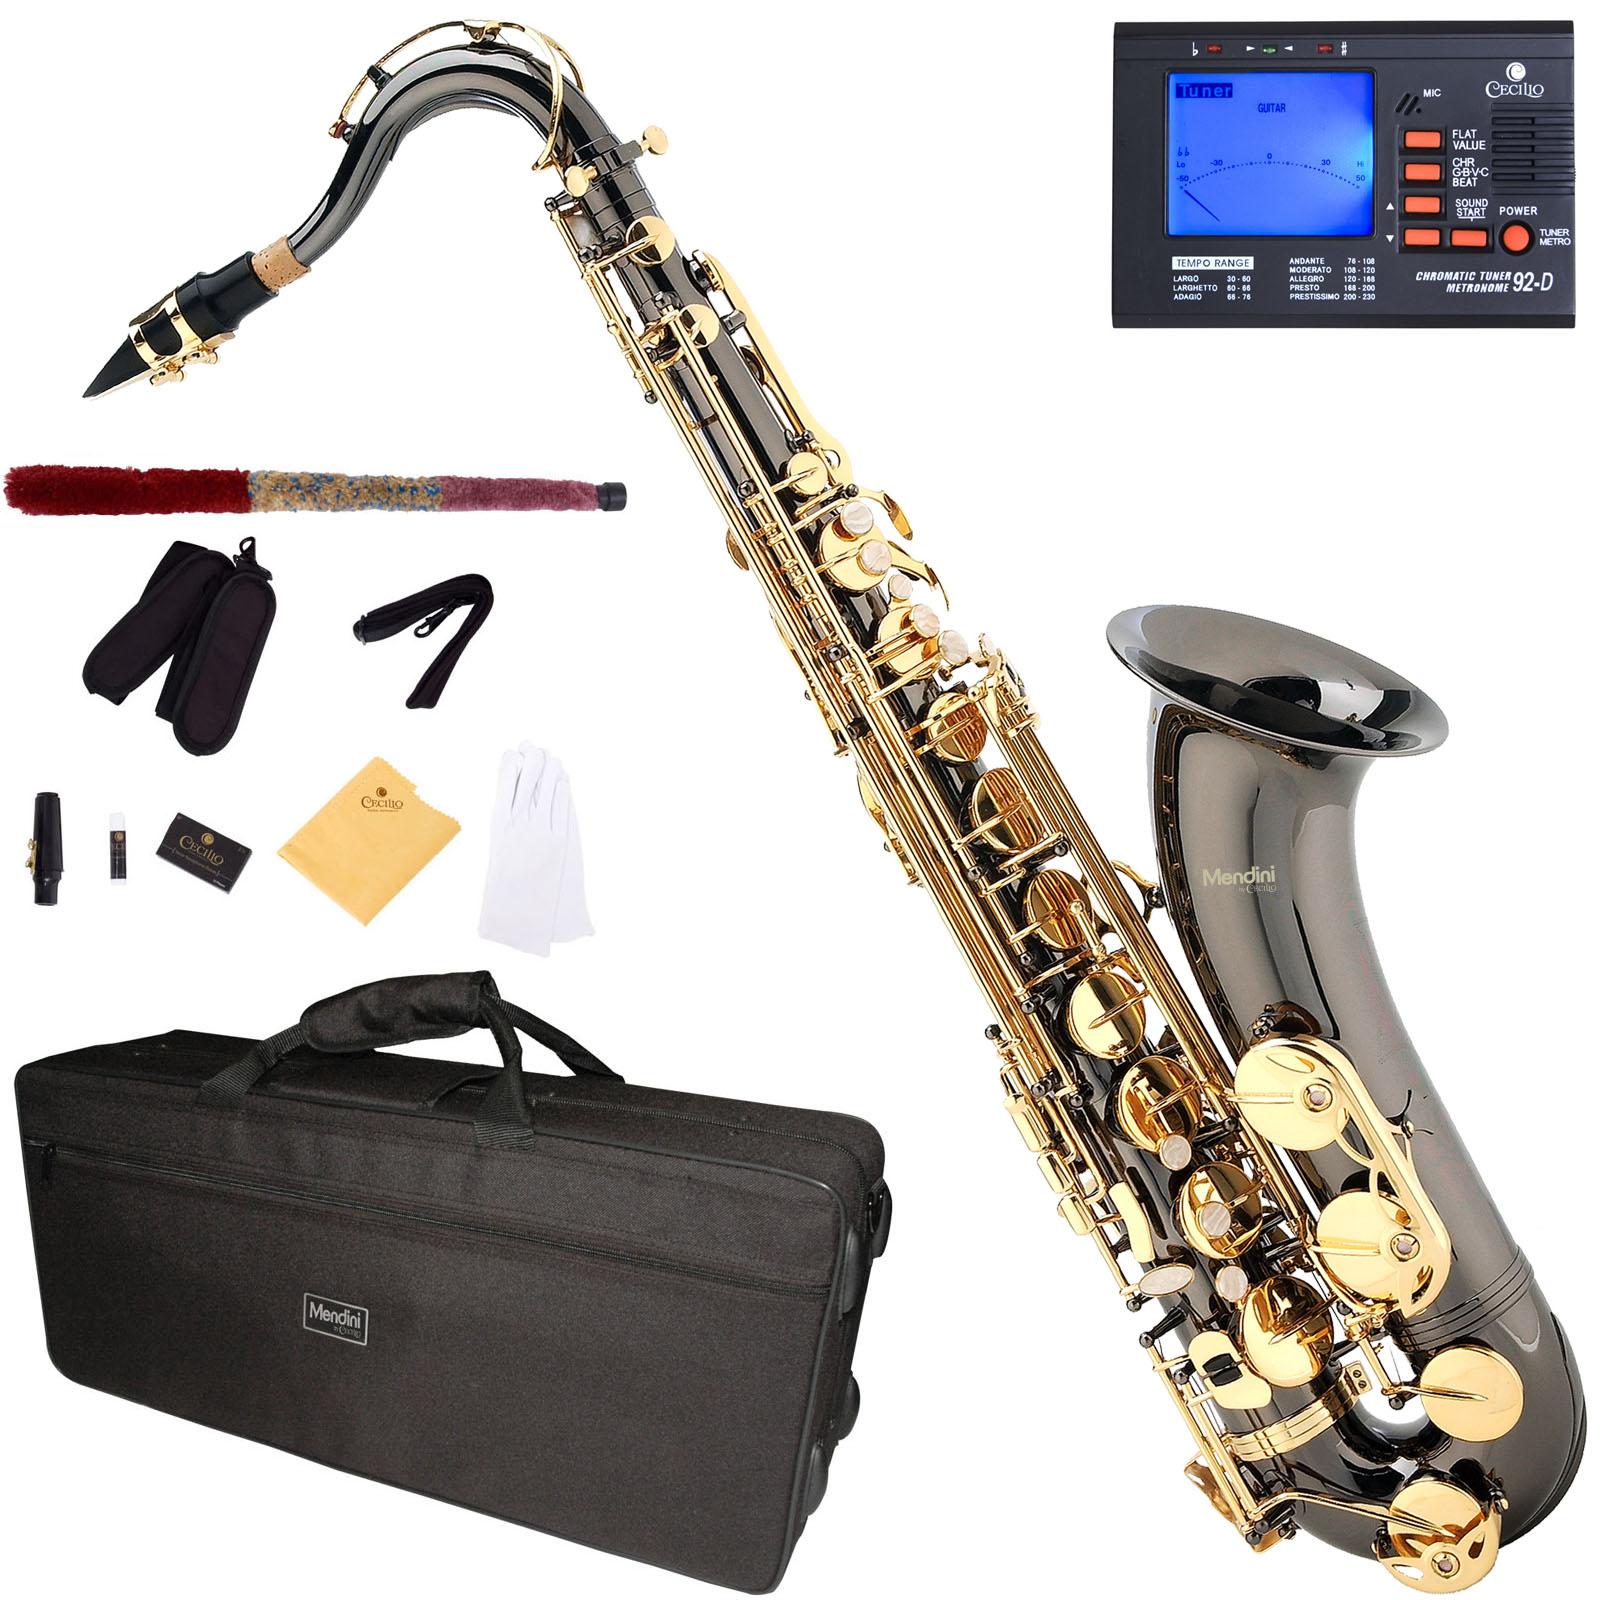 Mendini Black Nickel Plated Gold Keys Bb Tenor Saxophone with Tuner, 10 Reeds, Mouthpiece and Case, MTS-BNG